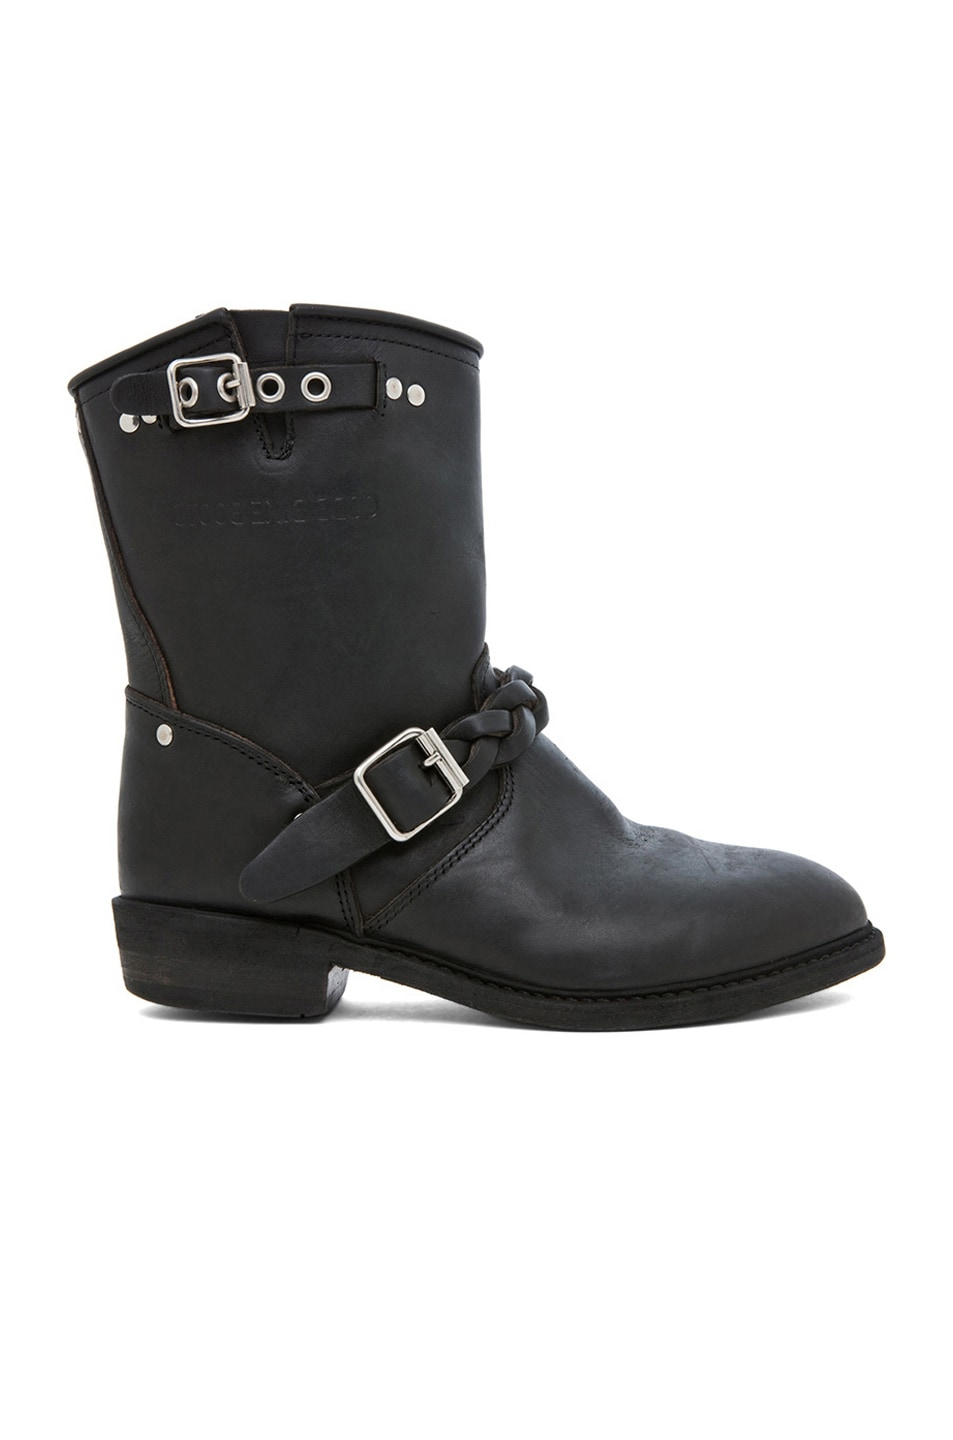 Image 1 of Golden Goose Leather Short Biker Boots in Black Stud